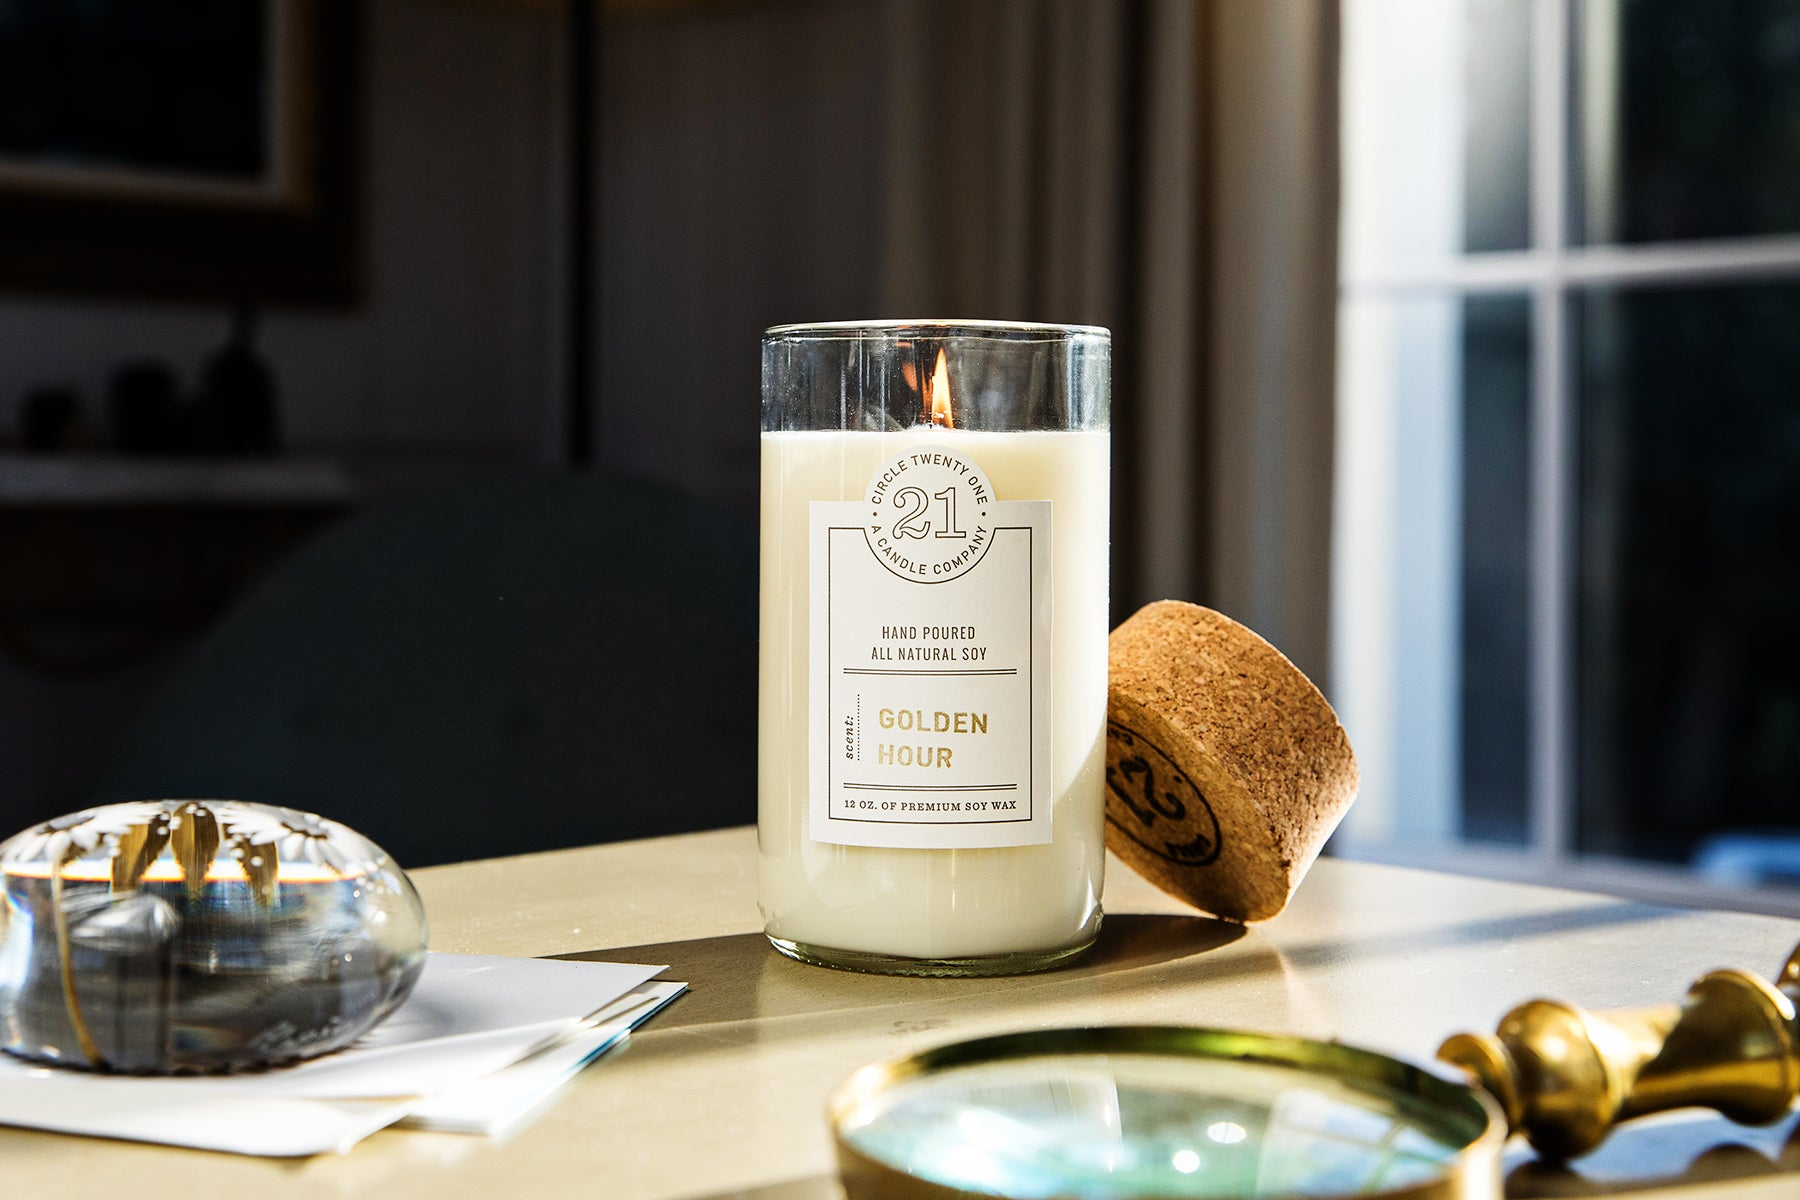 Golden Hour Scented Soy Candle